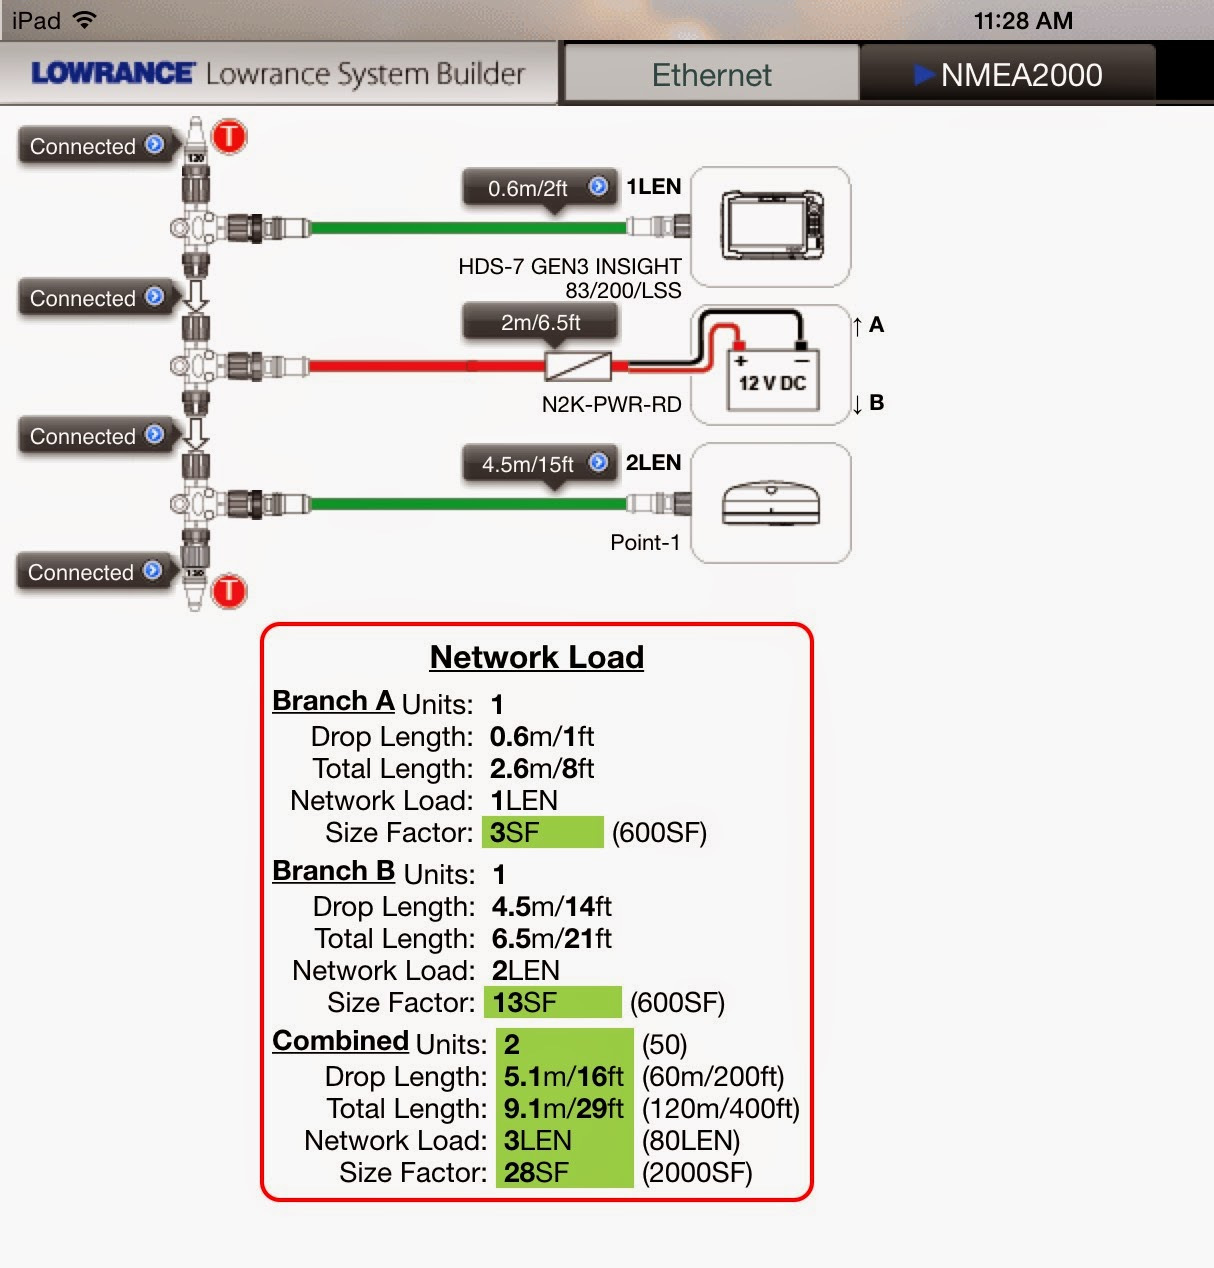 NMEAWiringDiagramGPS biobase portability options for your lowrance lowrance hds 7 wiring diagram at edmiracle.co